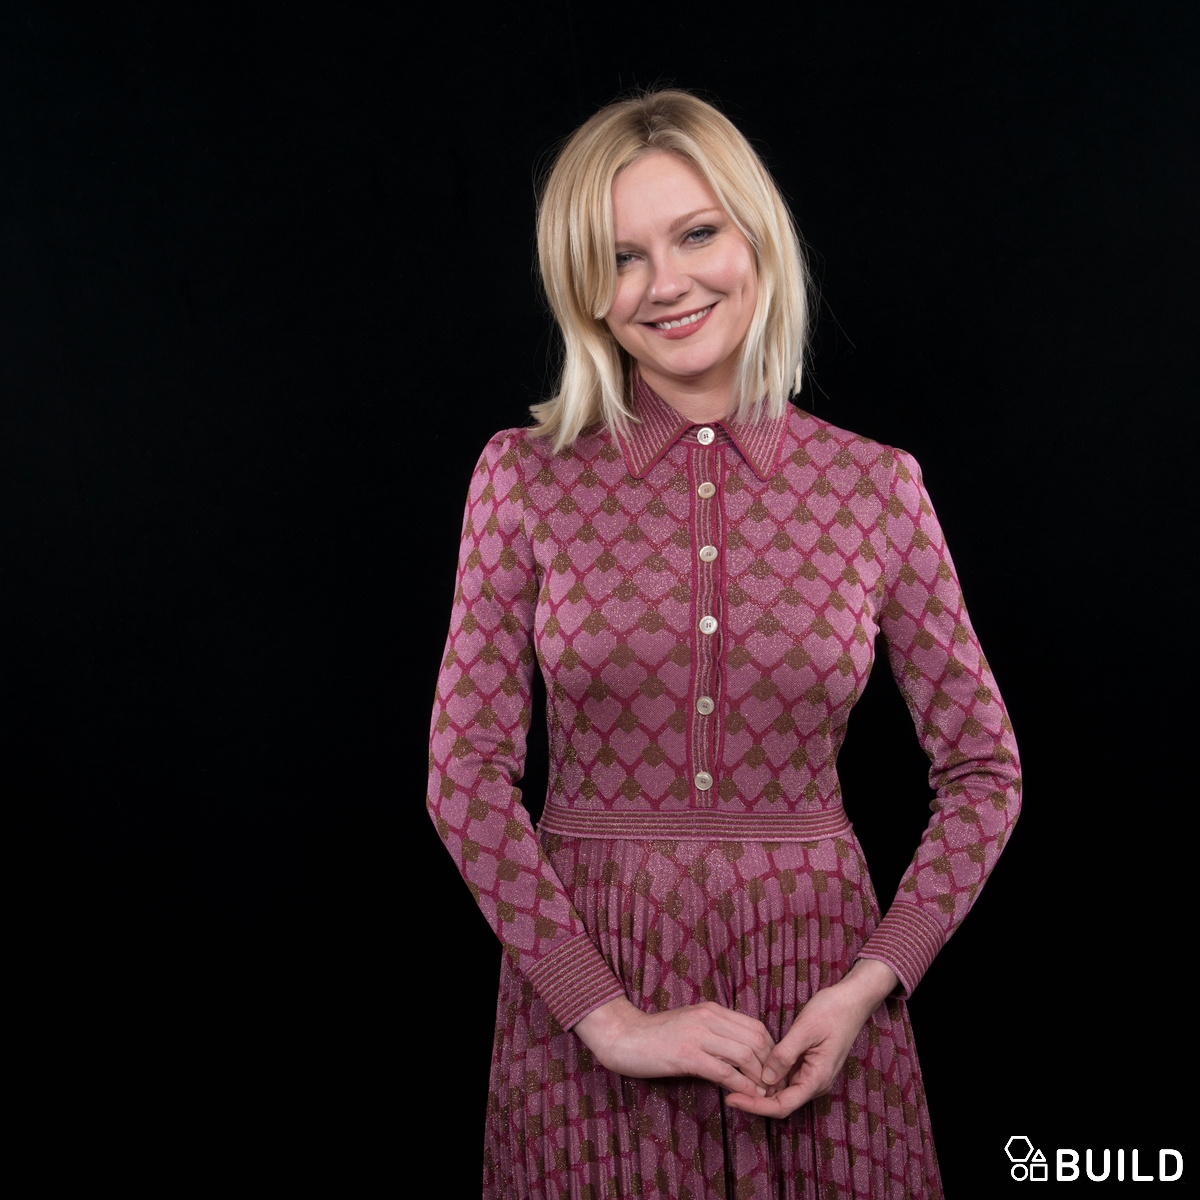 Kirsten Dunst and Patrick Wilson visit AOL Hq for Build on December 11, 2015 in New York. Photos by Noam Galai